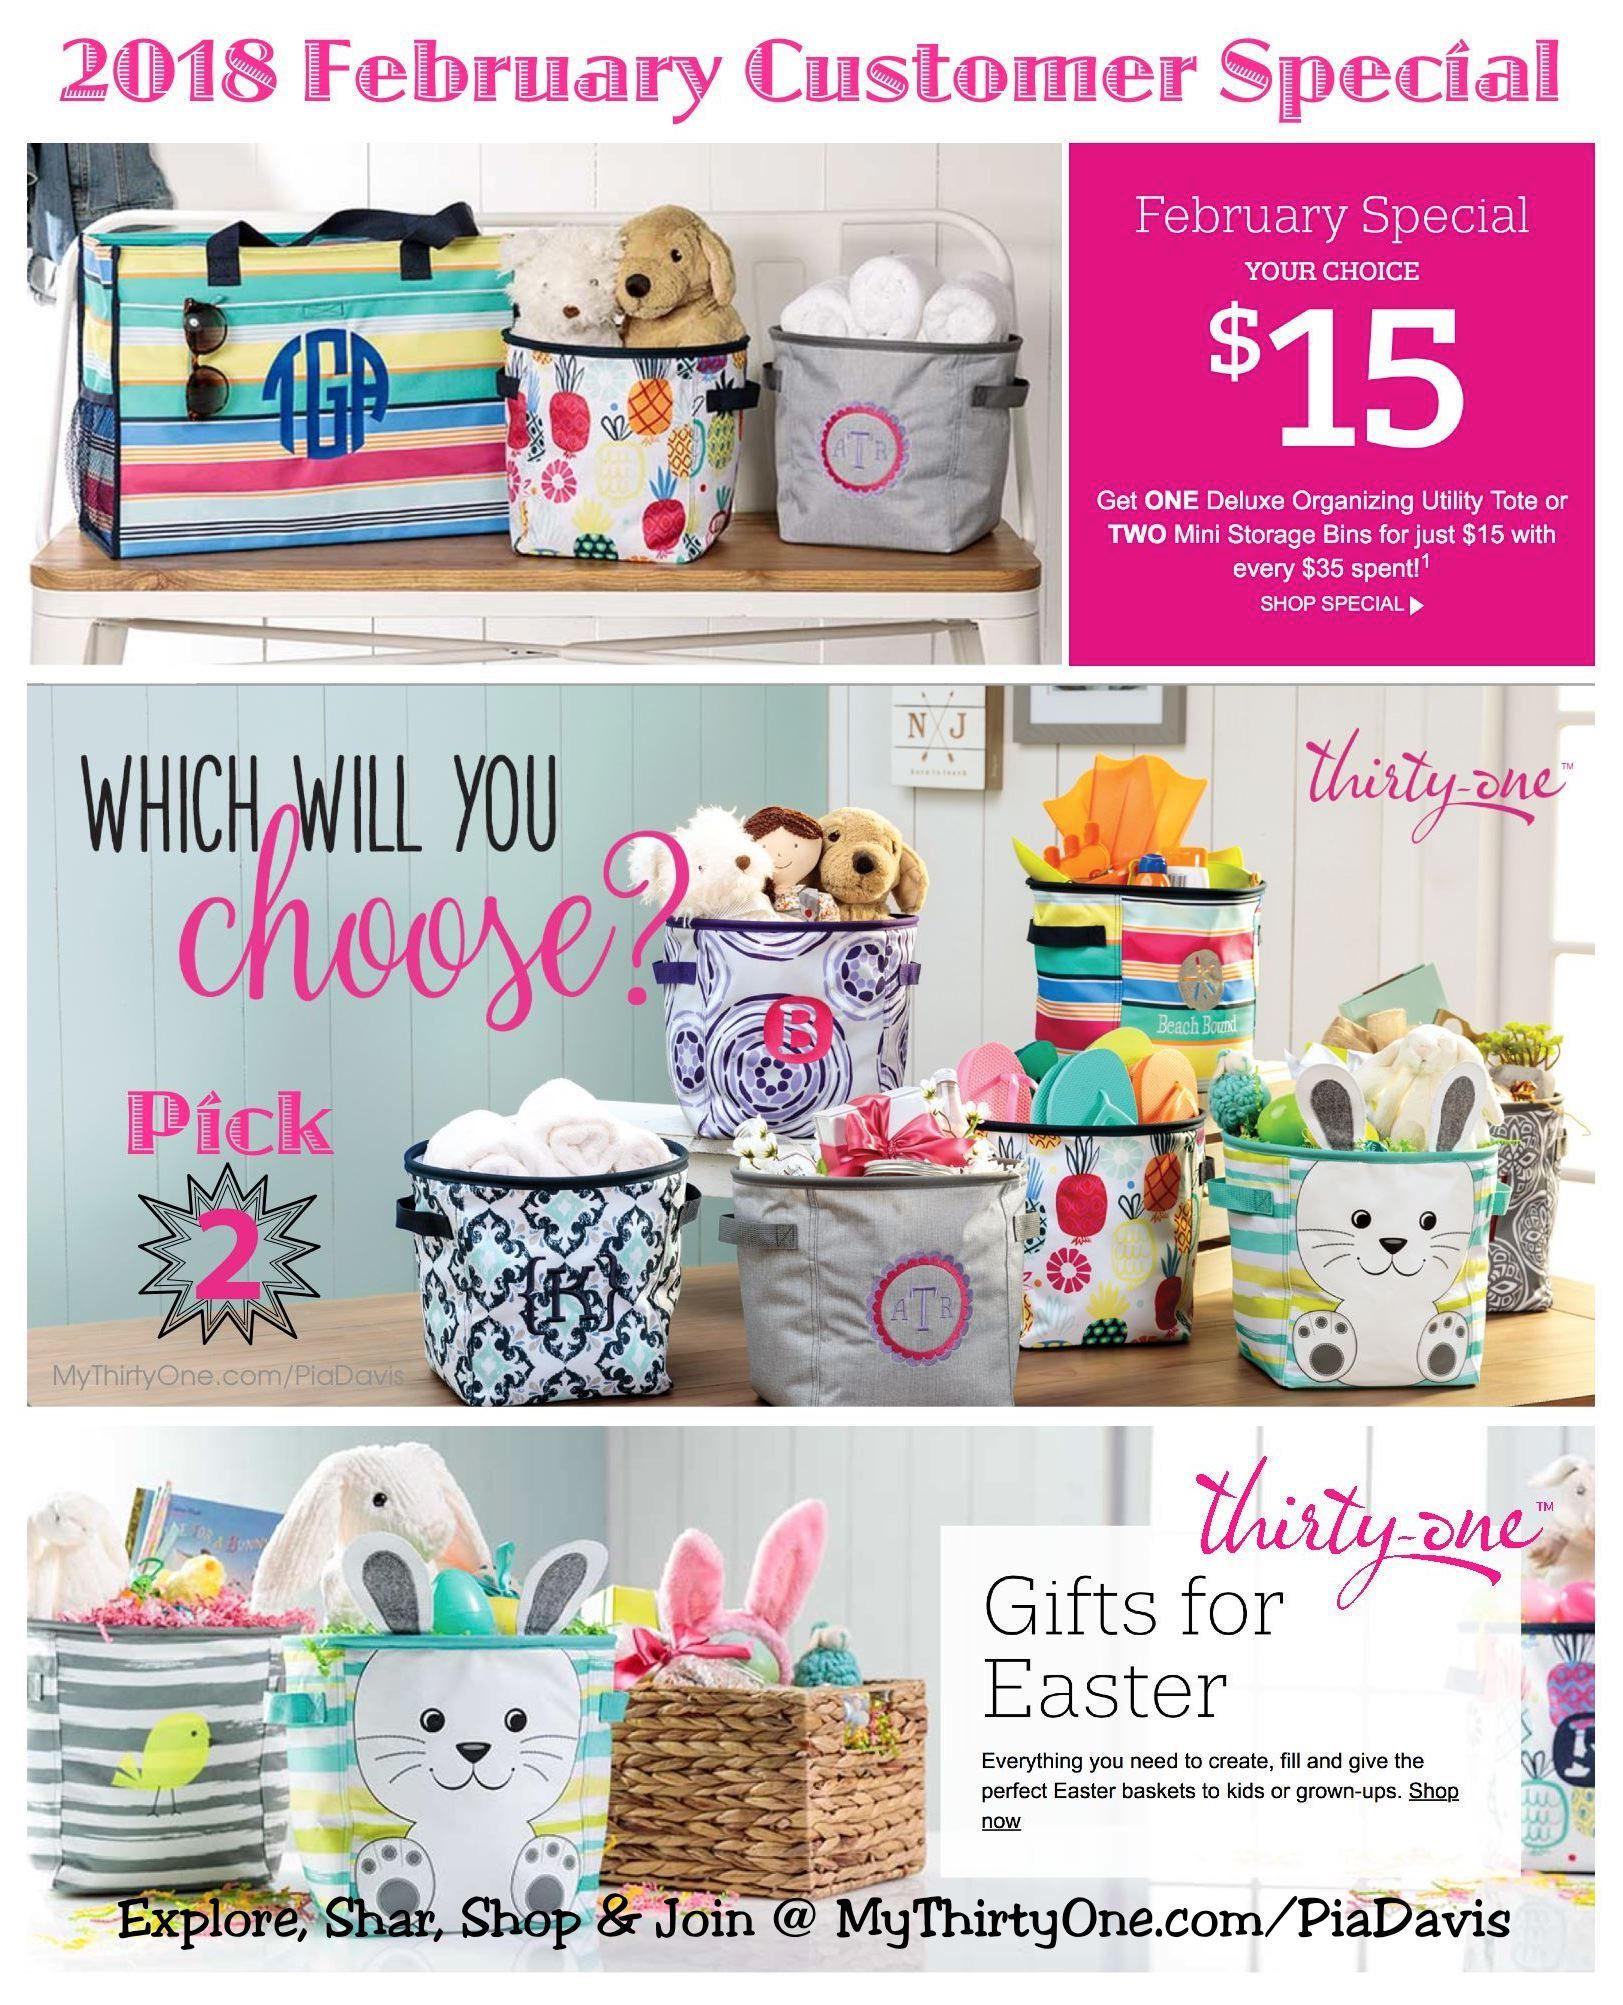 31 2018 Thirty One Gifts February Customer Special Get